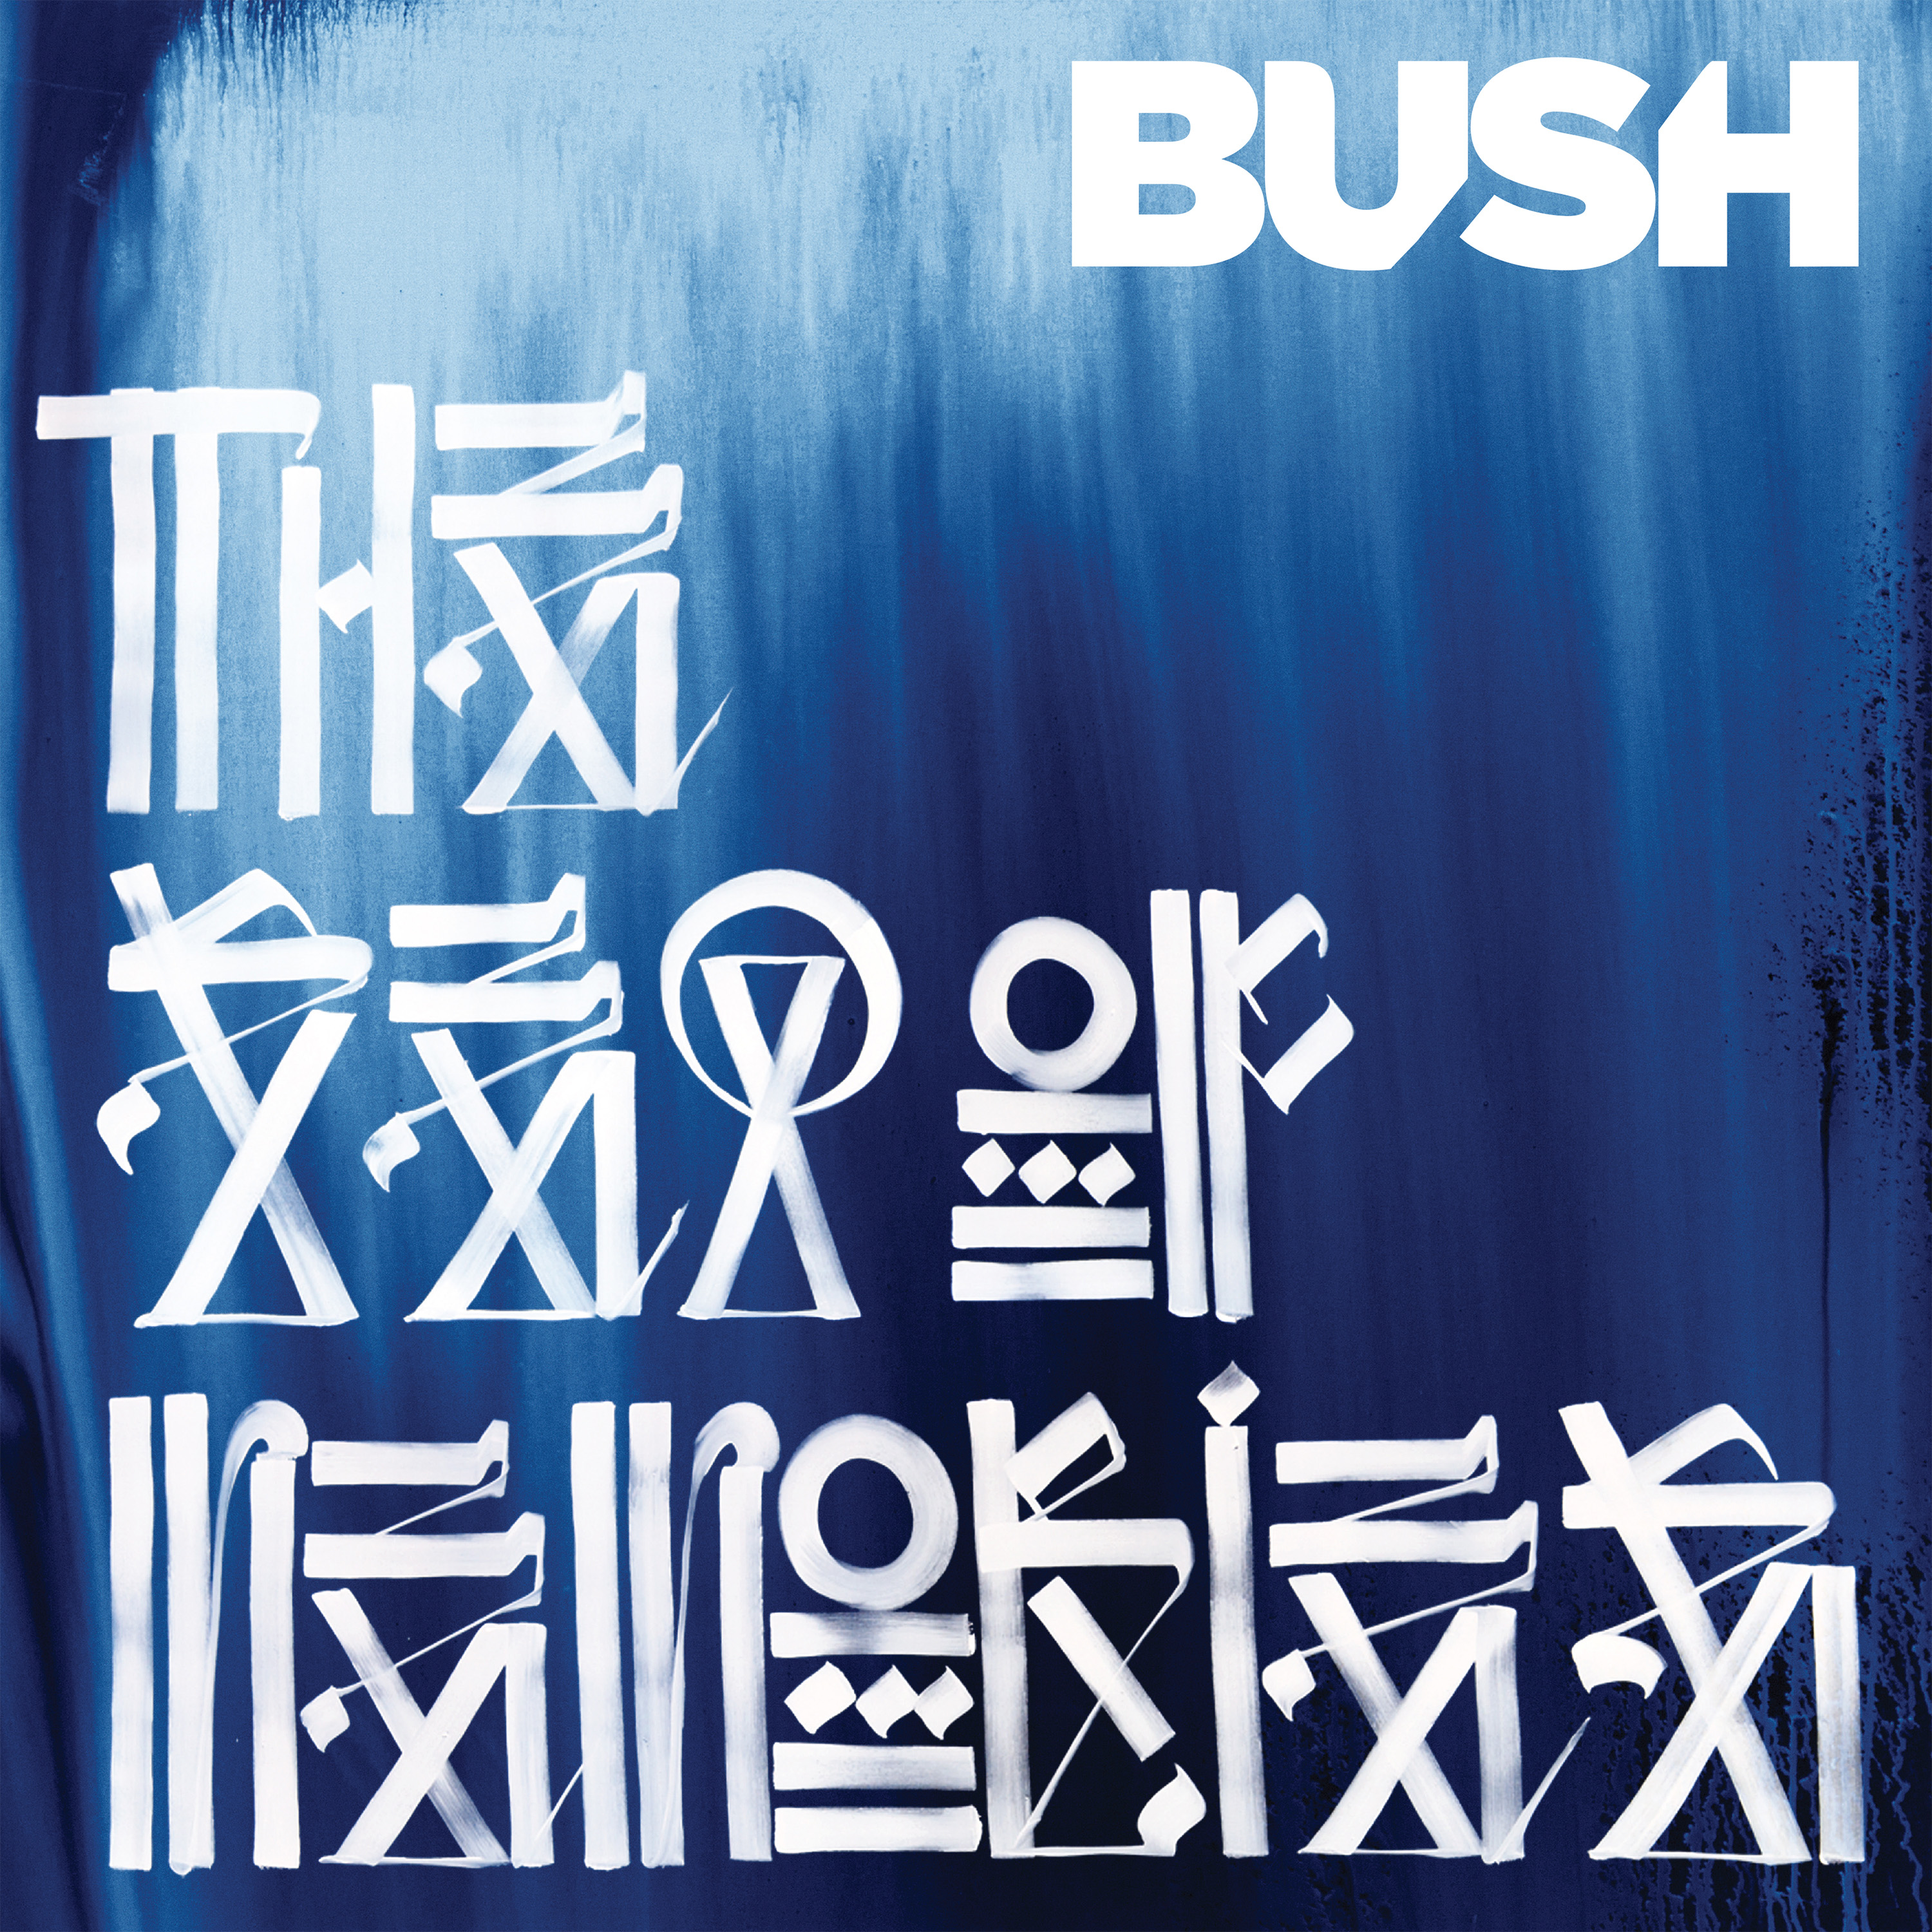 Bush - Sea Of Memories (10th Anniversary) (Rsd) [Colored Vinyl] [RSD Drops 2021]